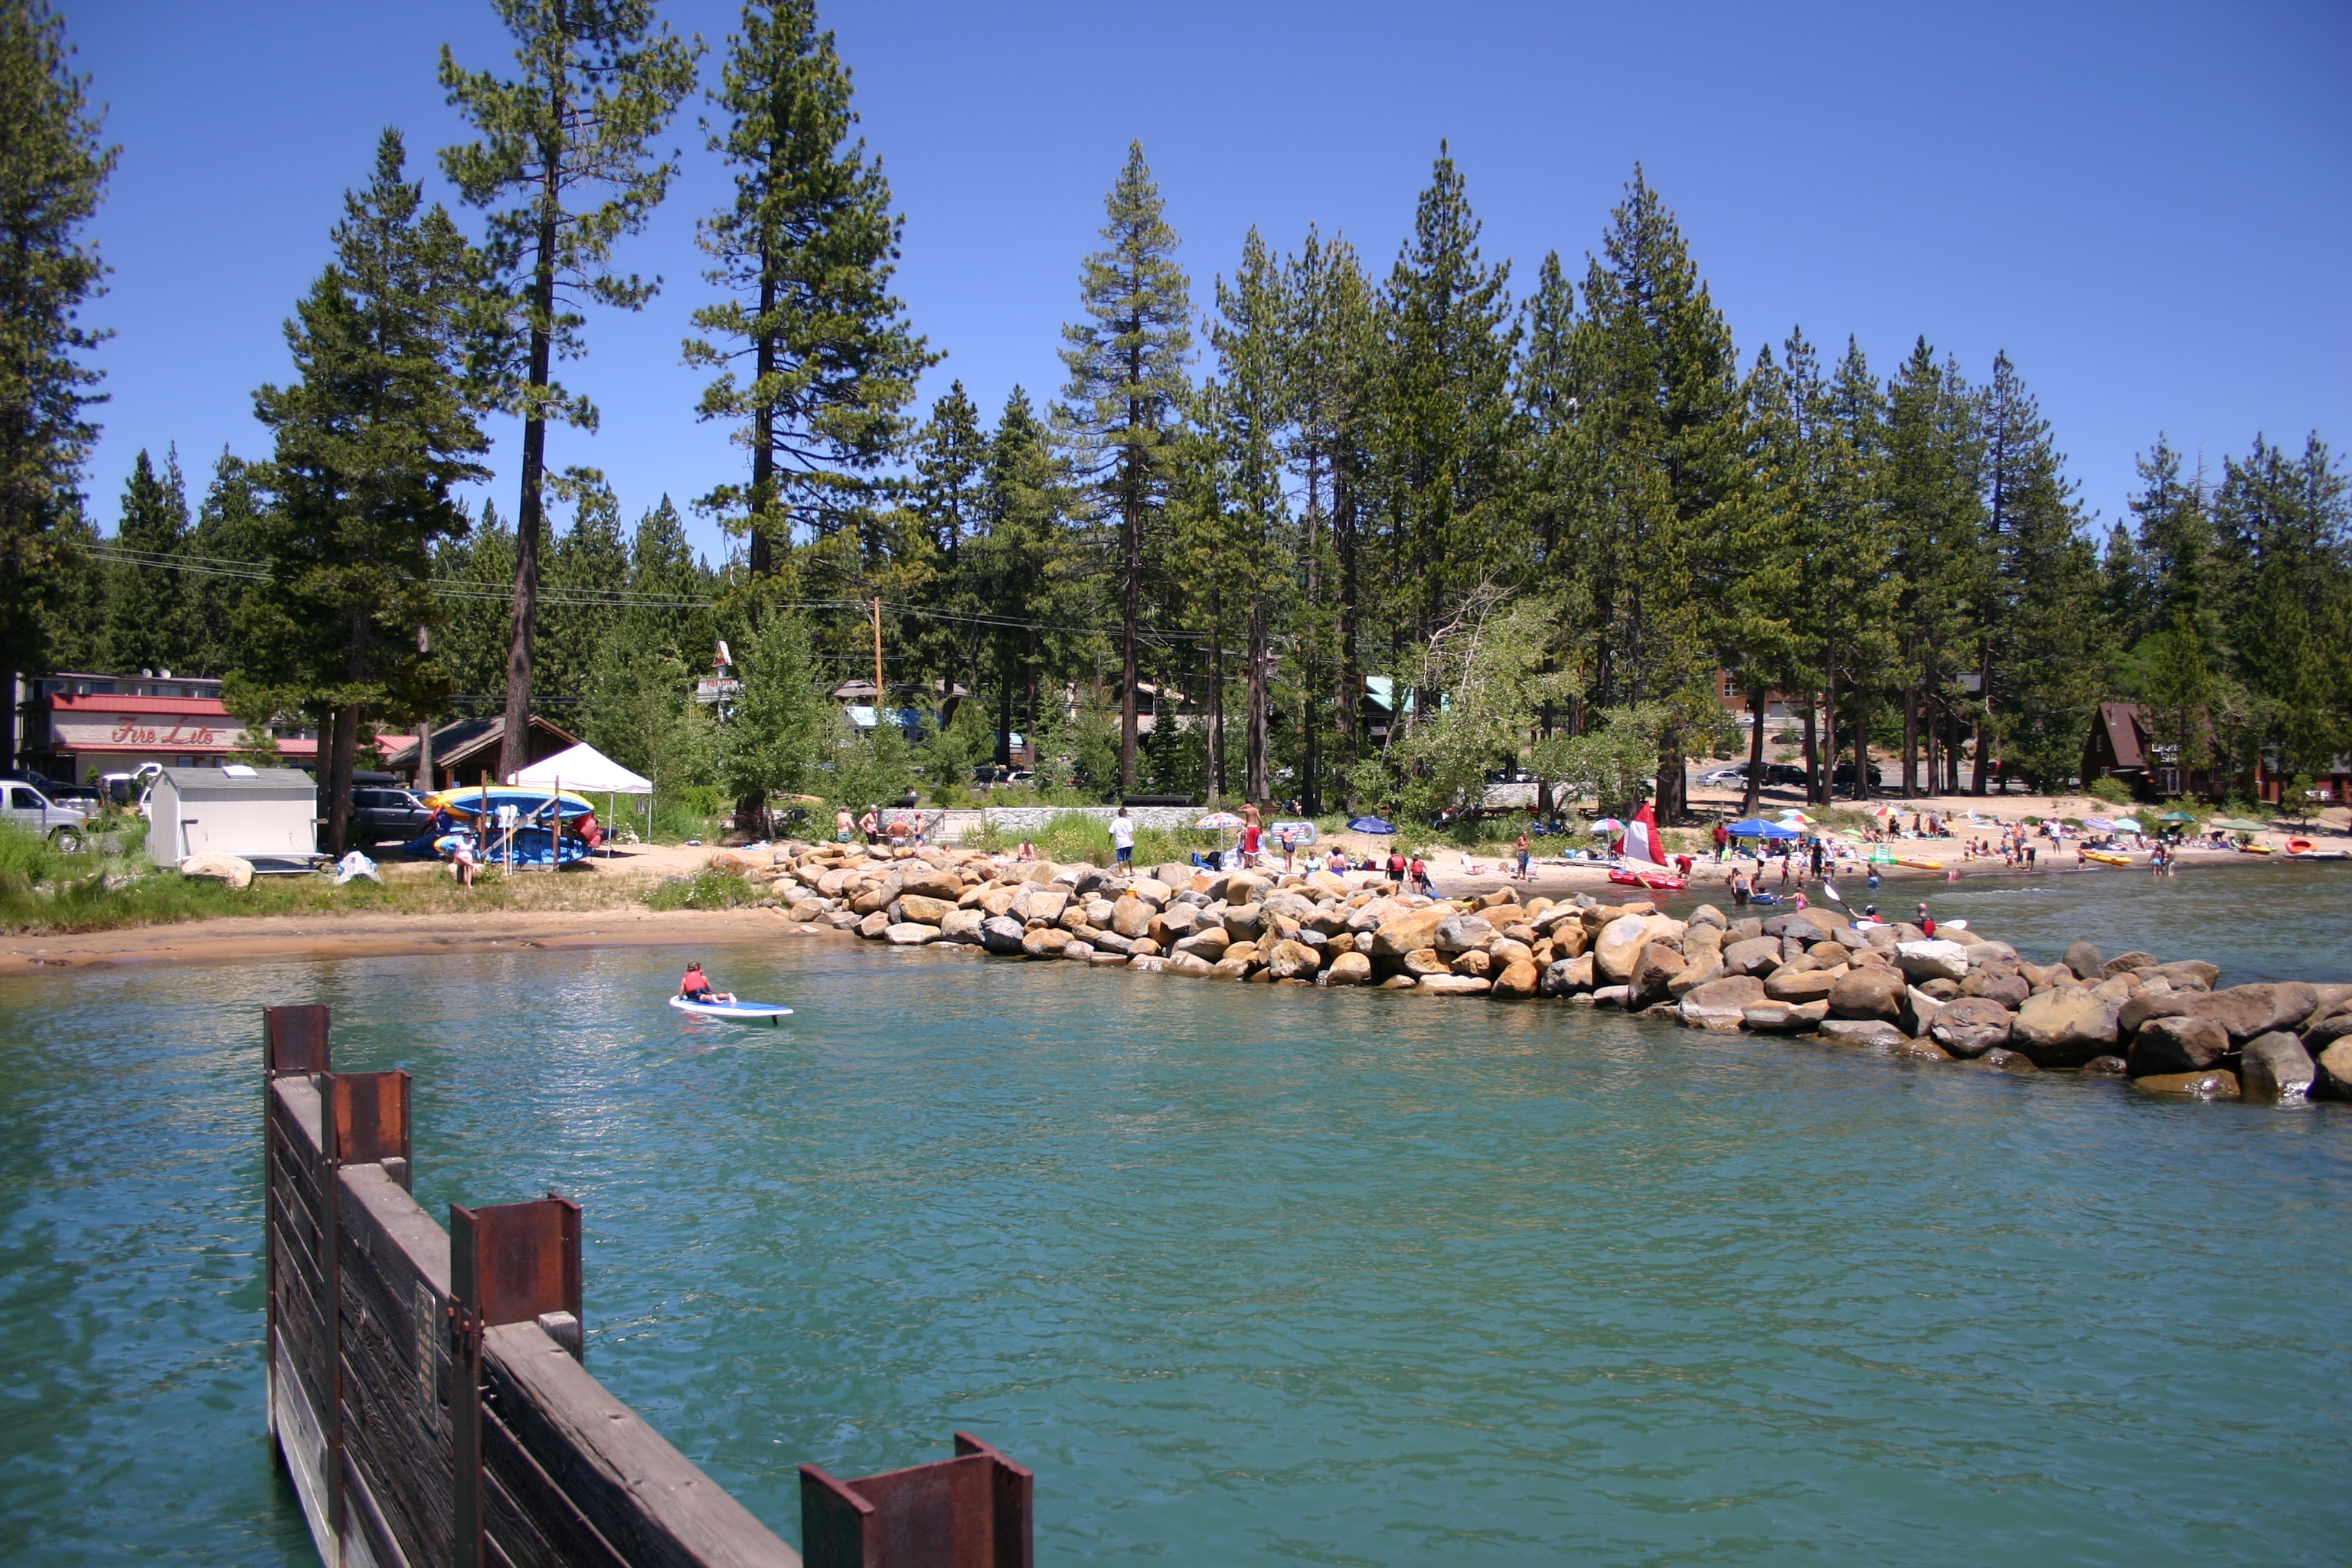 Tahoe Vista Boat Launch / Agatam Beach Image 3